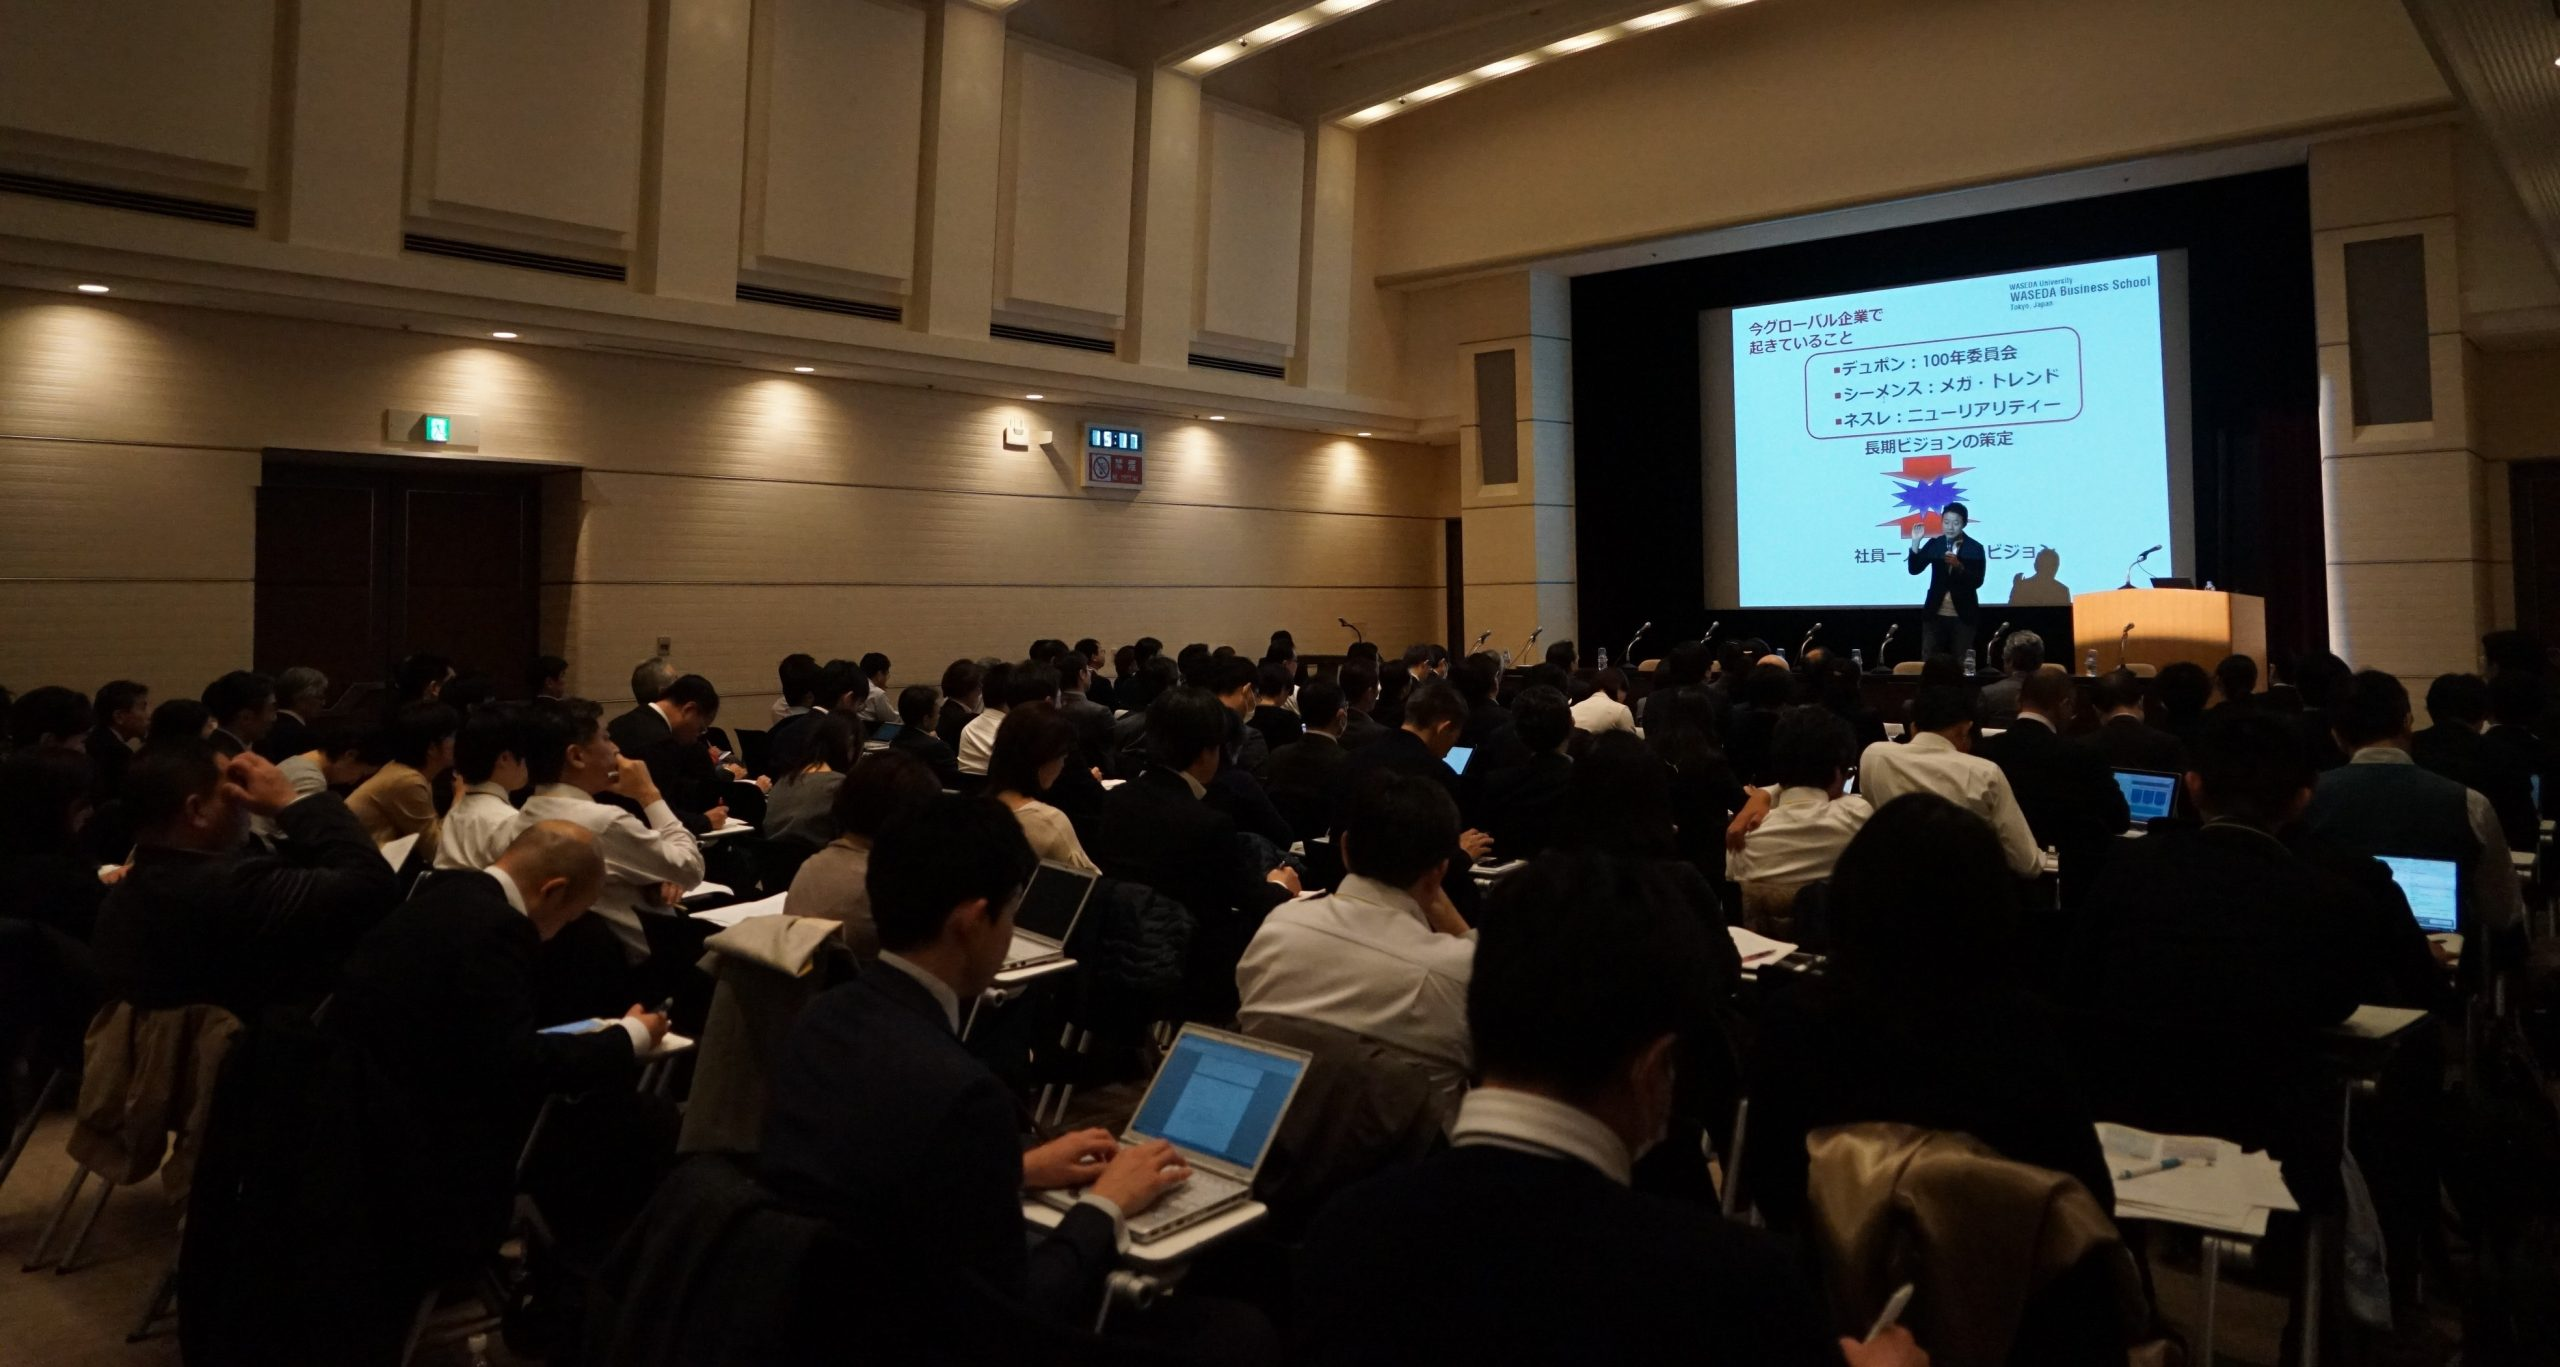 Japan Exchange Group: working to narrow the ESG disclosure perception gap